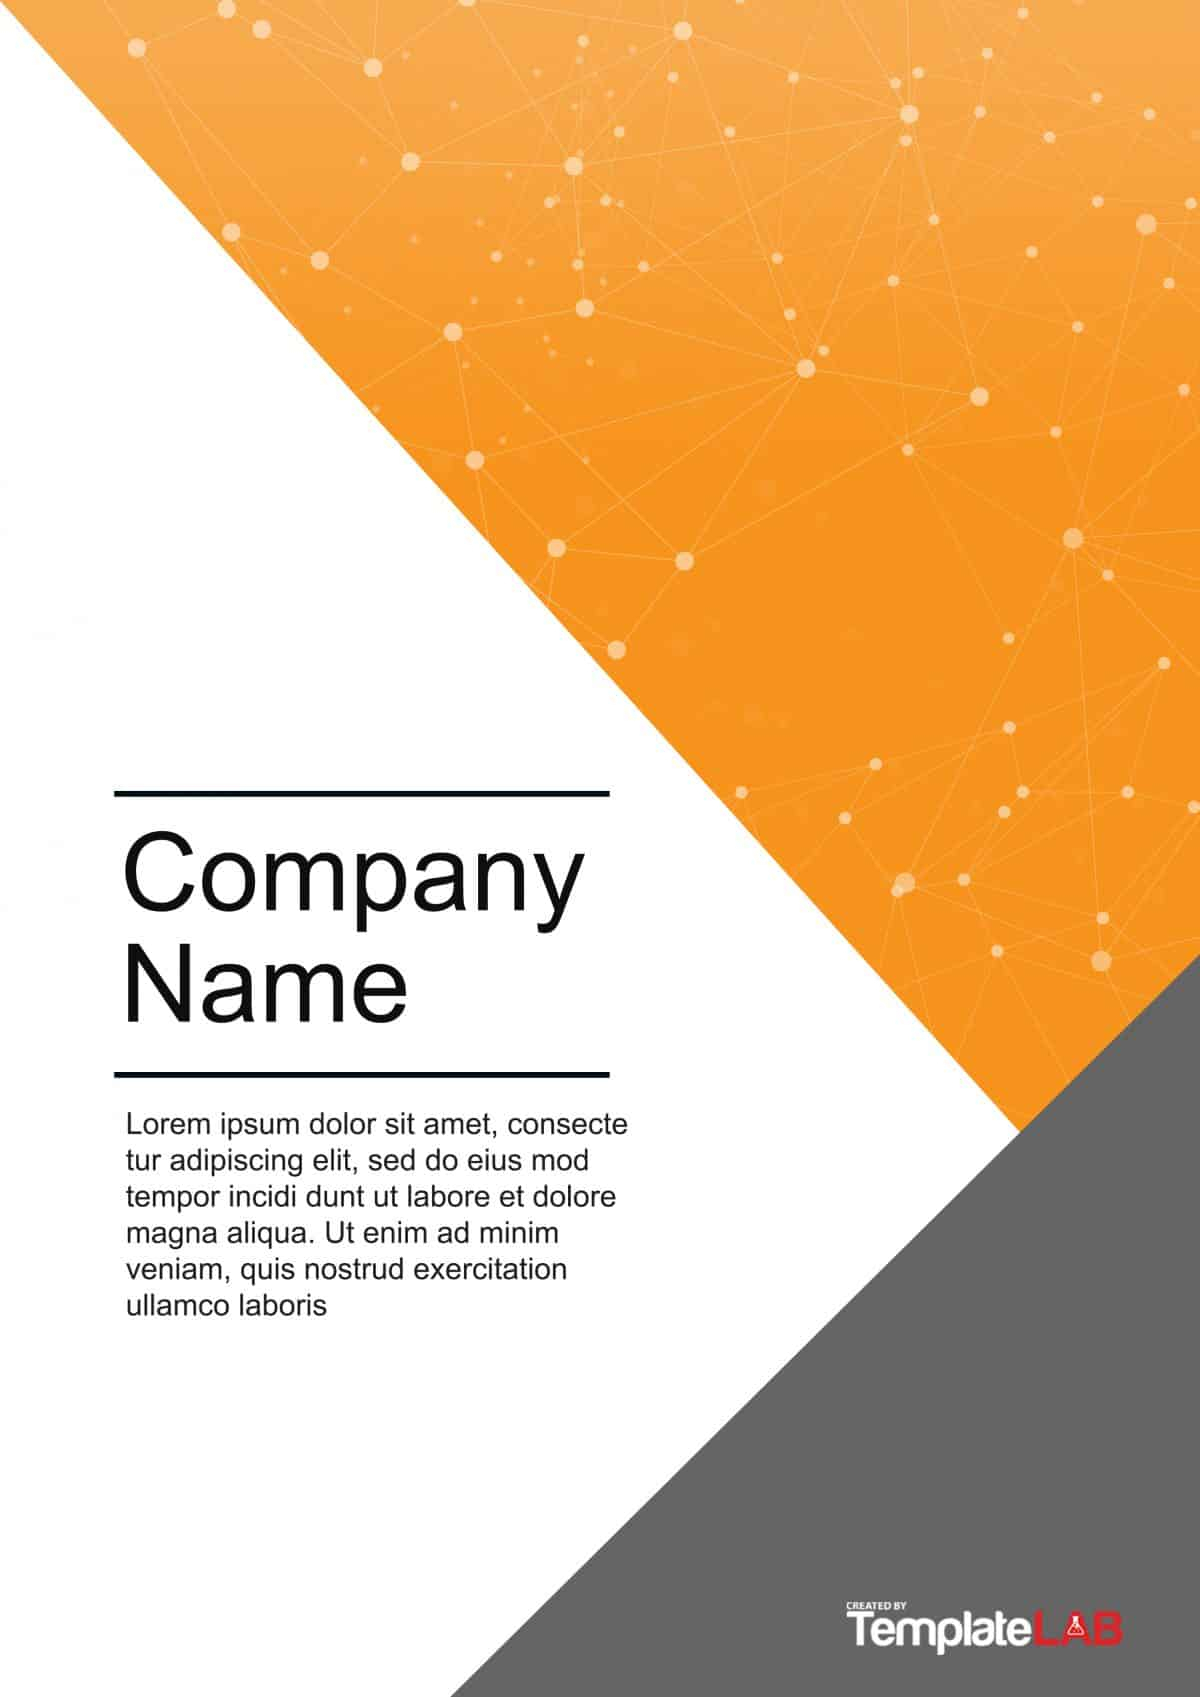 39 Amazing Cover Page Templates (Word + Psd) ᐅ Template Lab With Regard To Word Title Page Templates